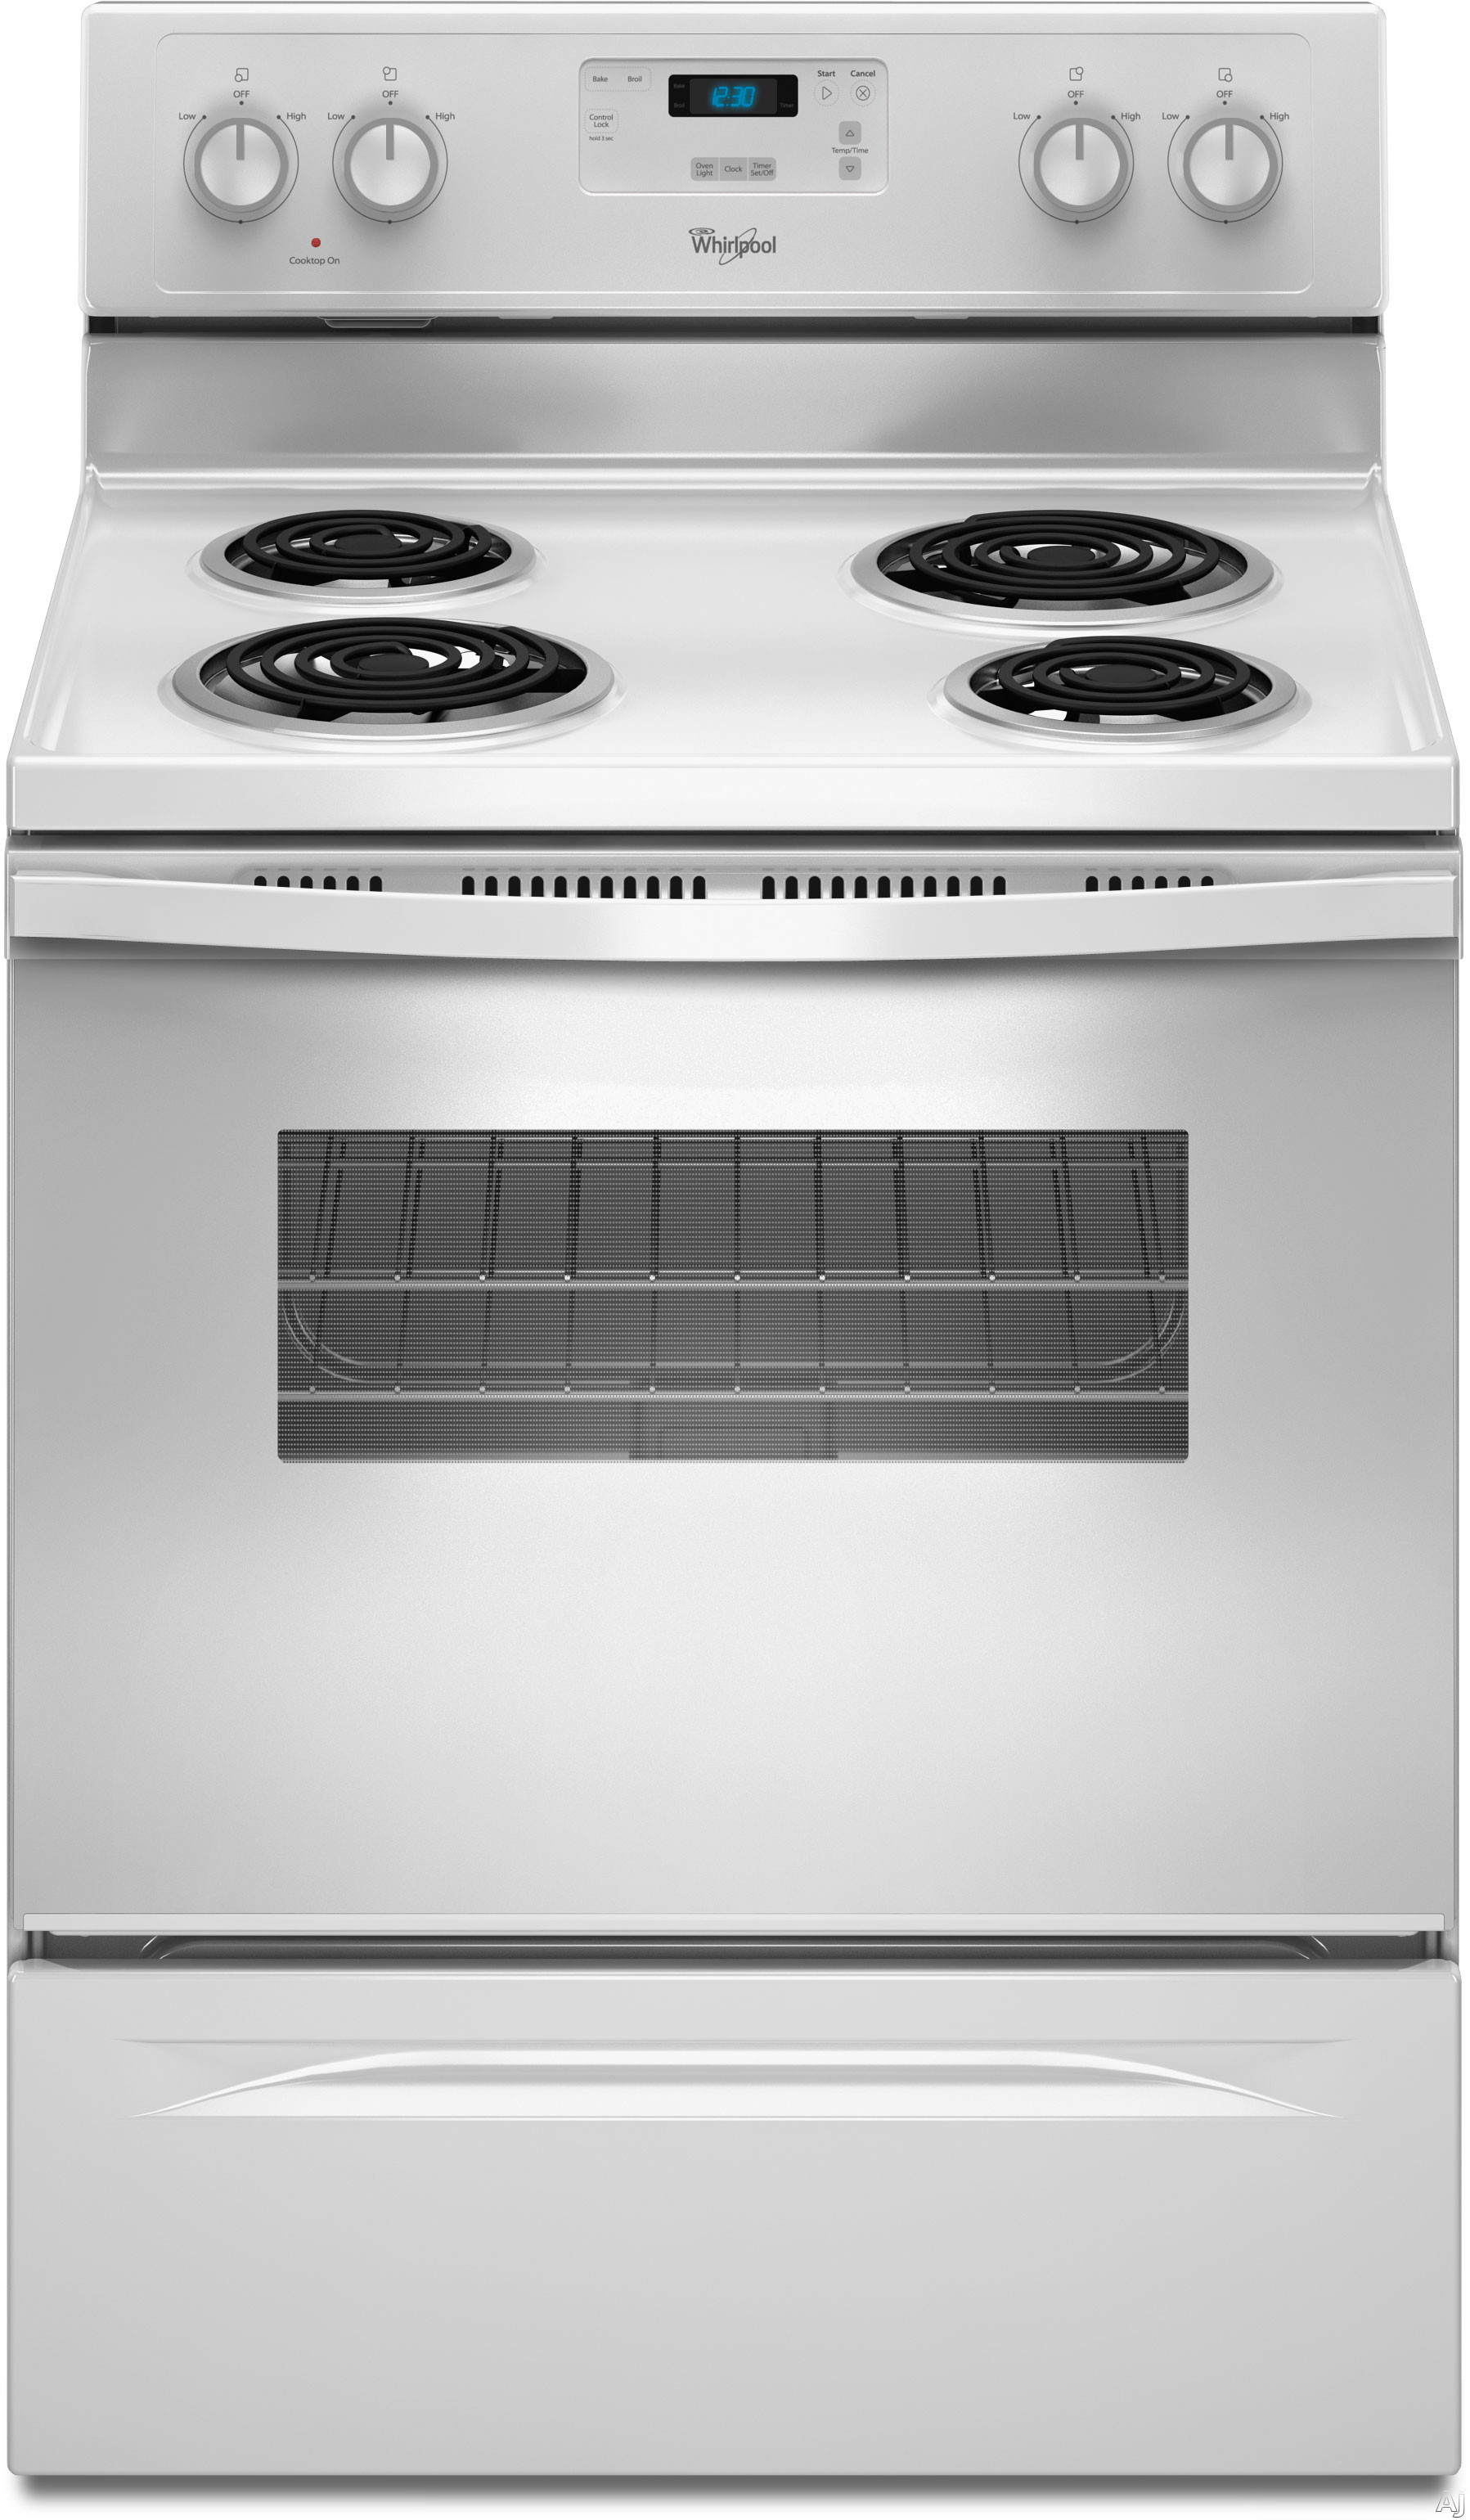 Full Info on this Whirlpool WFC130M0AW 30